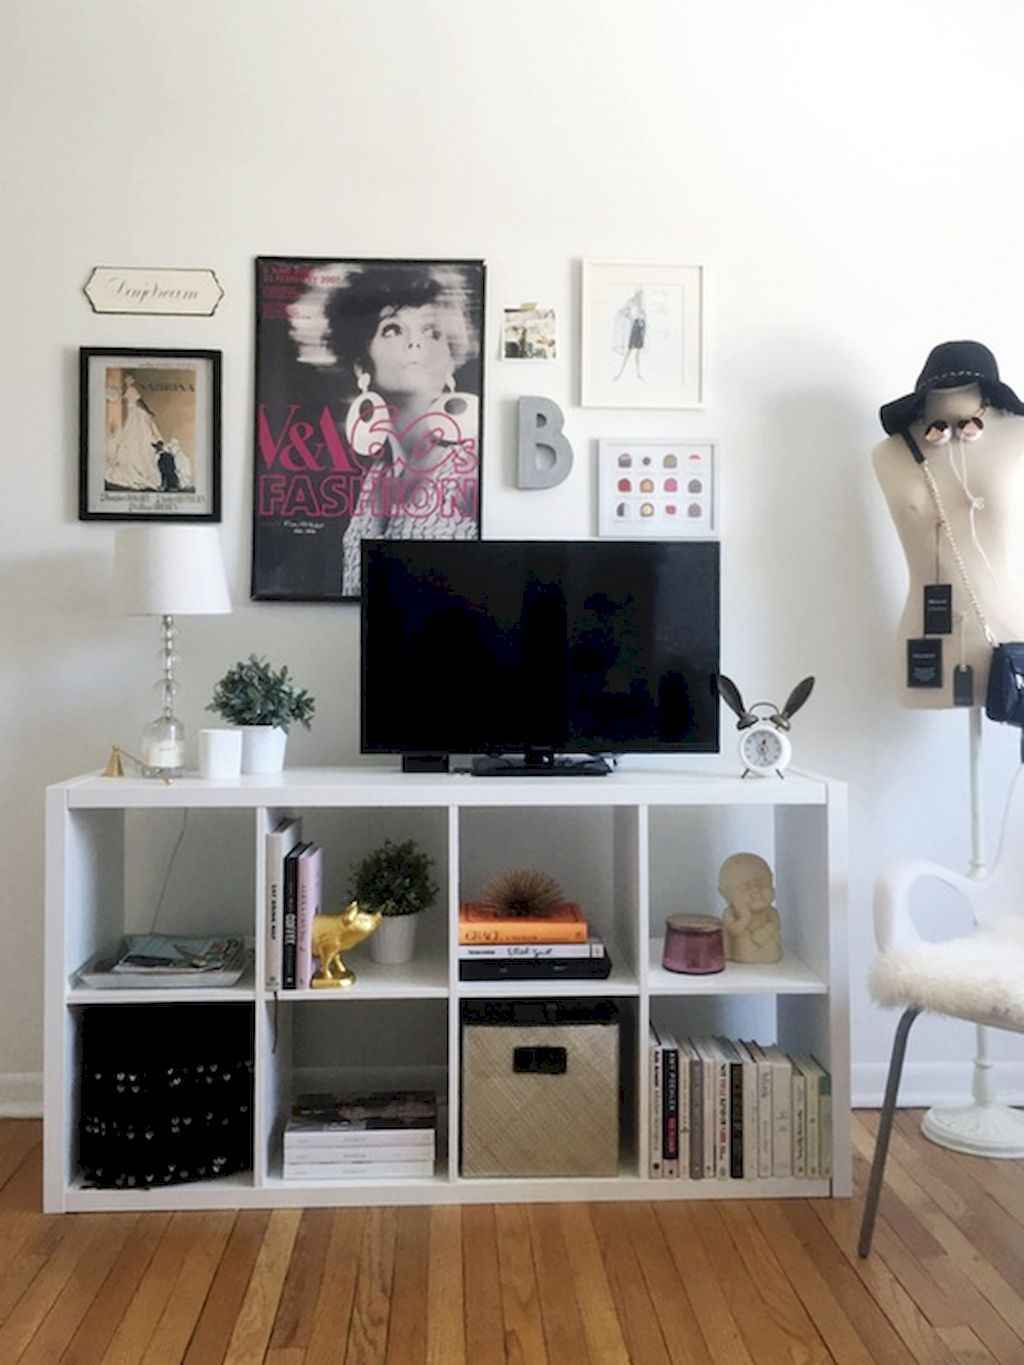 Cool small apartment decorating ideas on a budget (12)